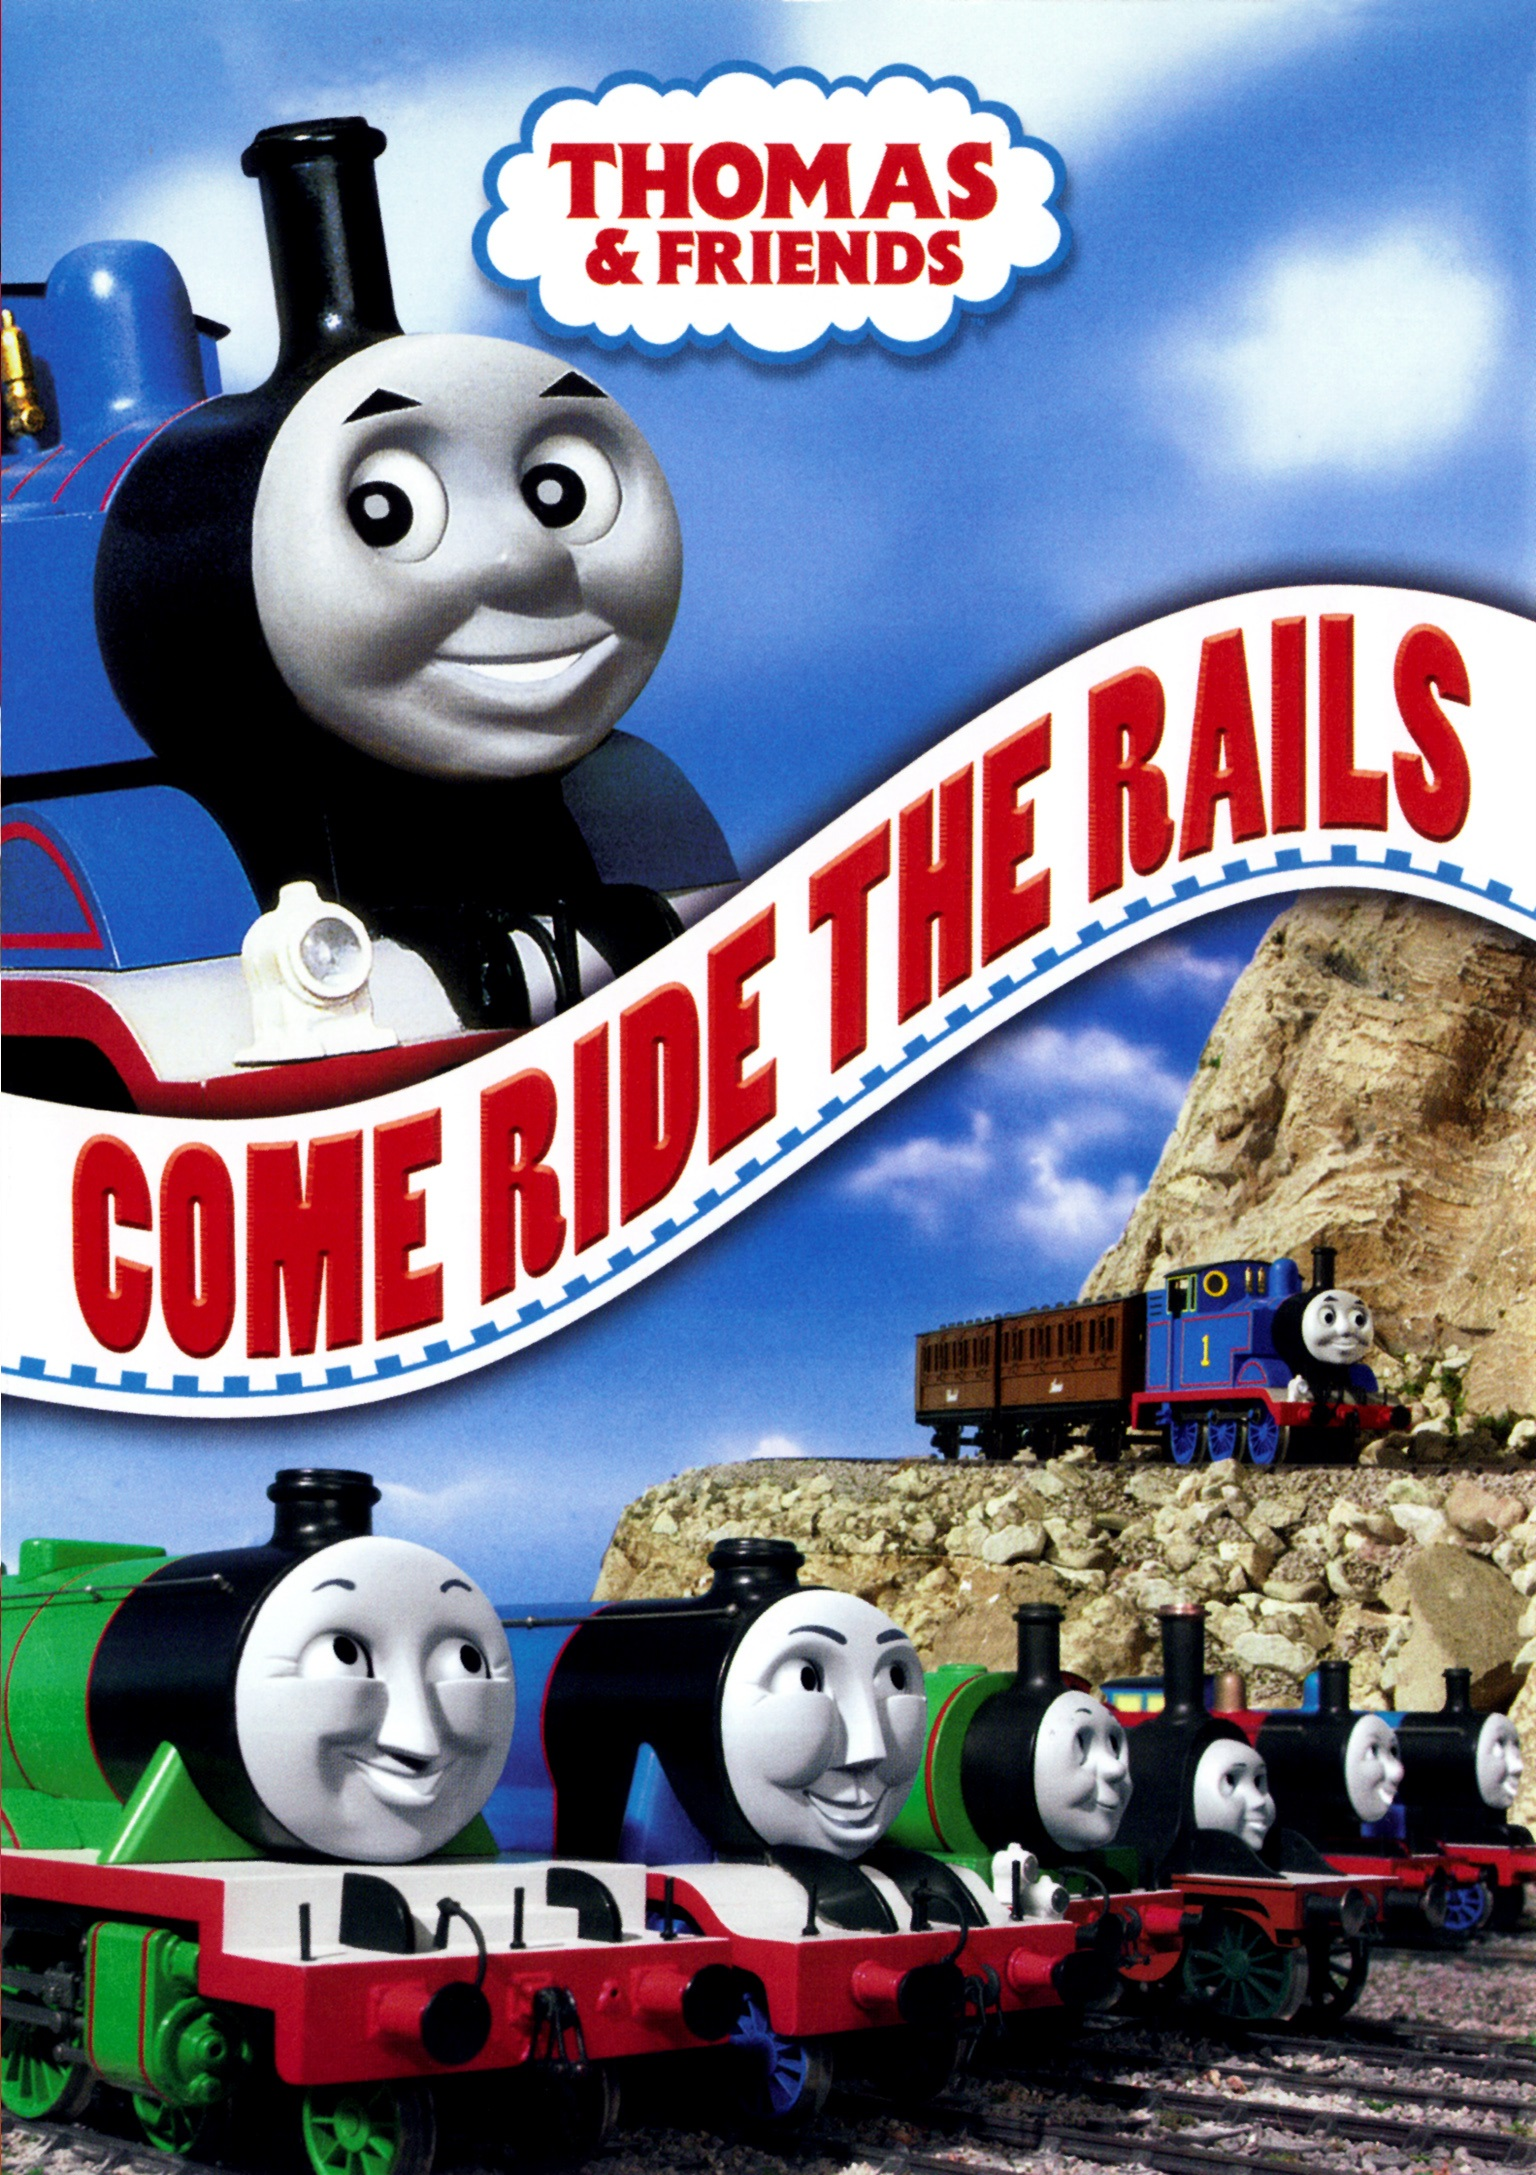 Come Ride the Rails/Gallery